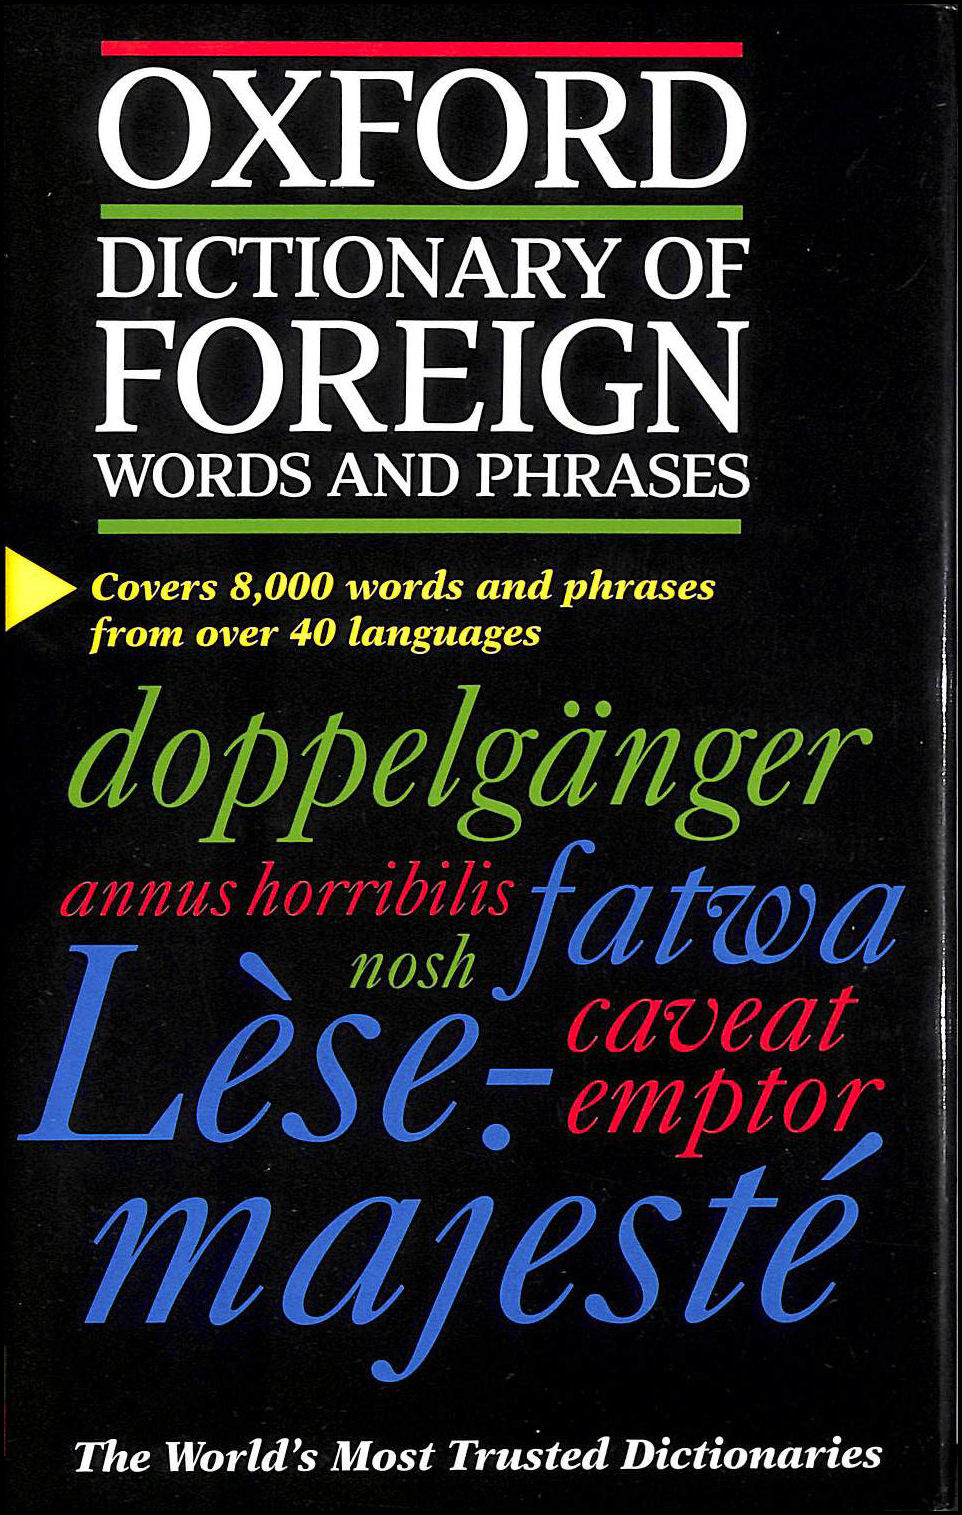 The Oxford Dictionary of Foreign Words and Phrases, Speake, Jennifer [Editor]